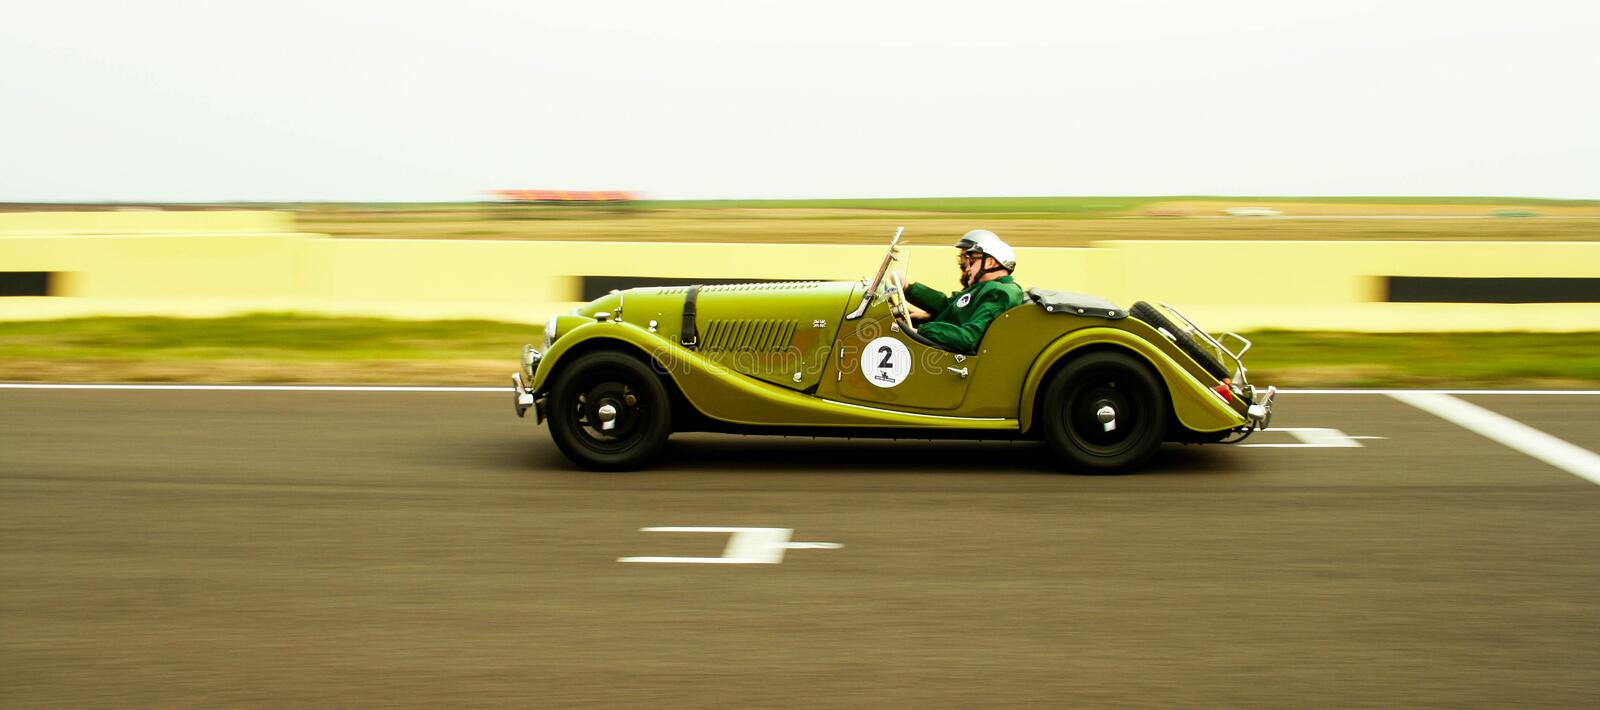 Morgan Racing on Circuit royalty free stock images